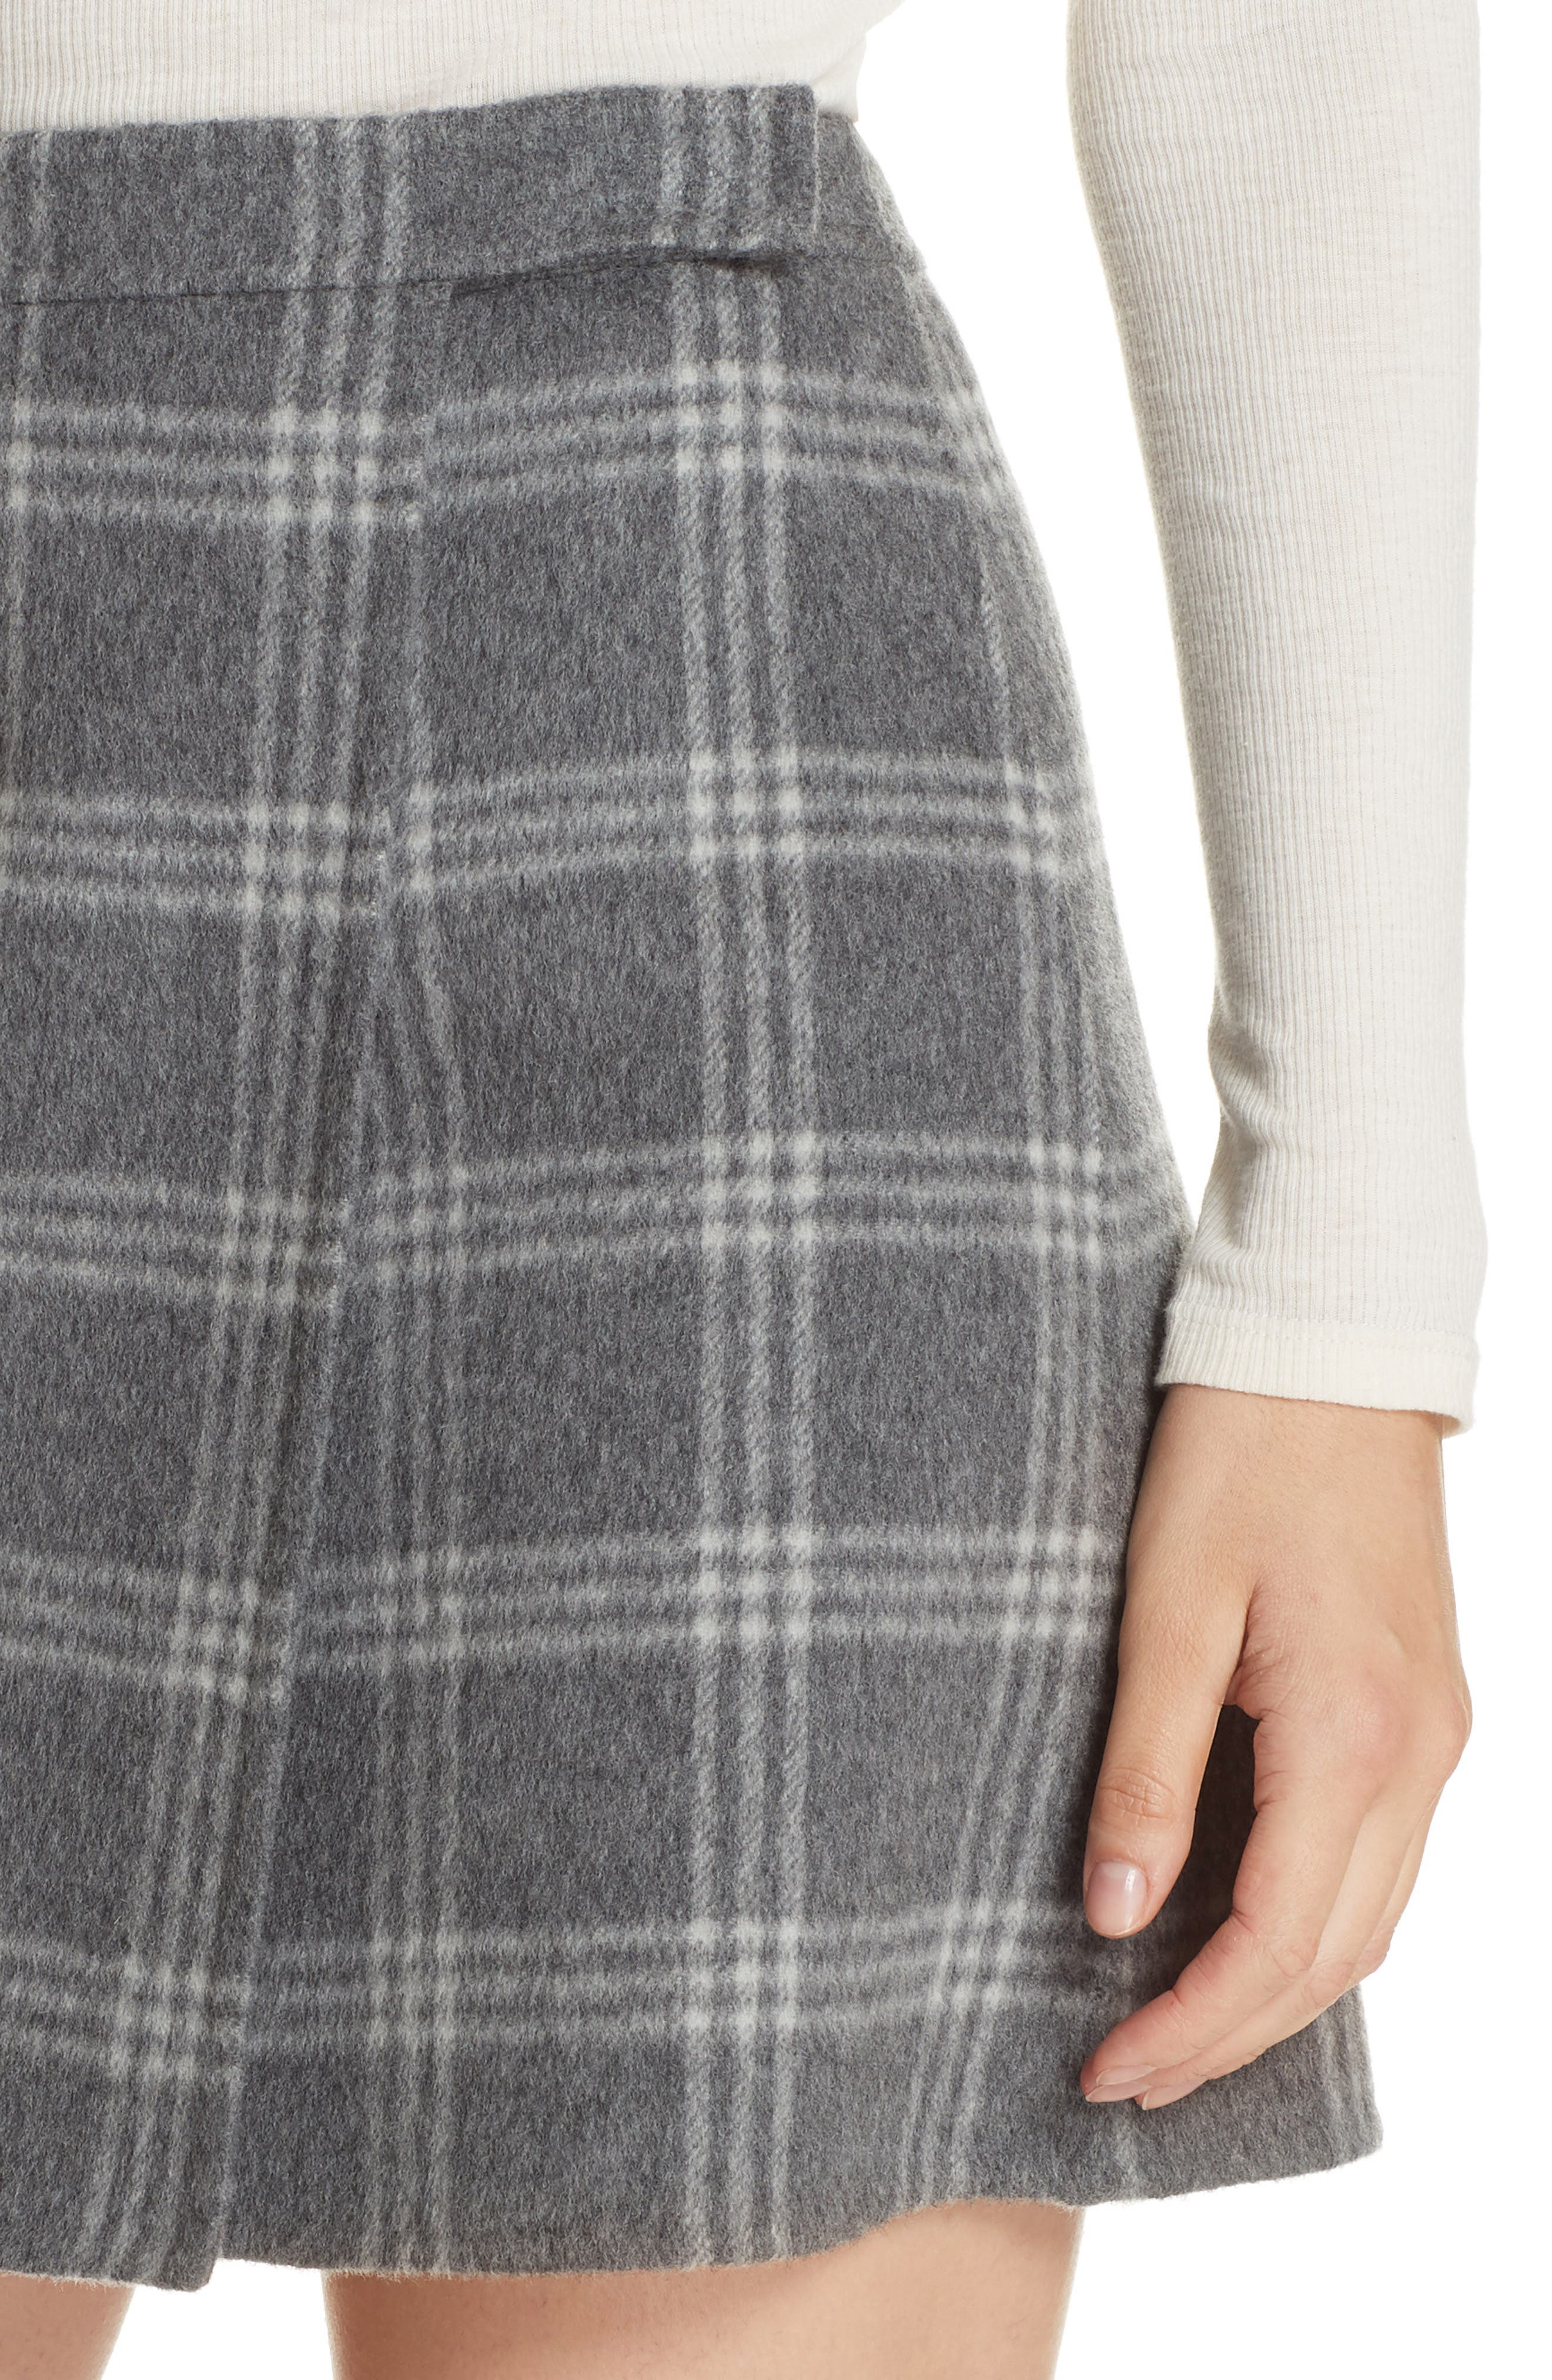 Westport Plaid Wool & Cashmere Miniskirt,                             Alternate thumbnail 4, color,                             022